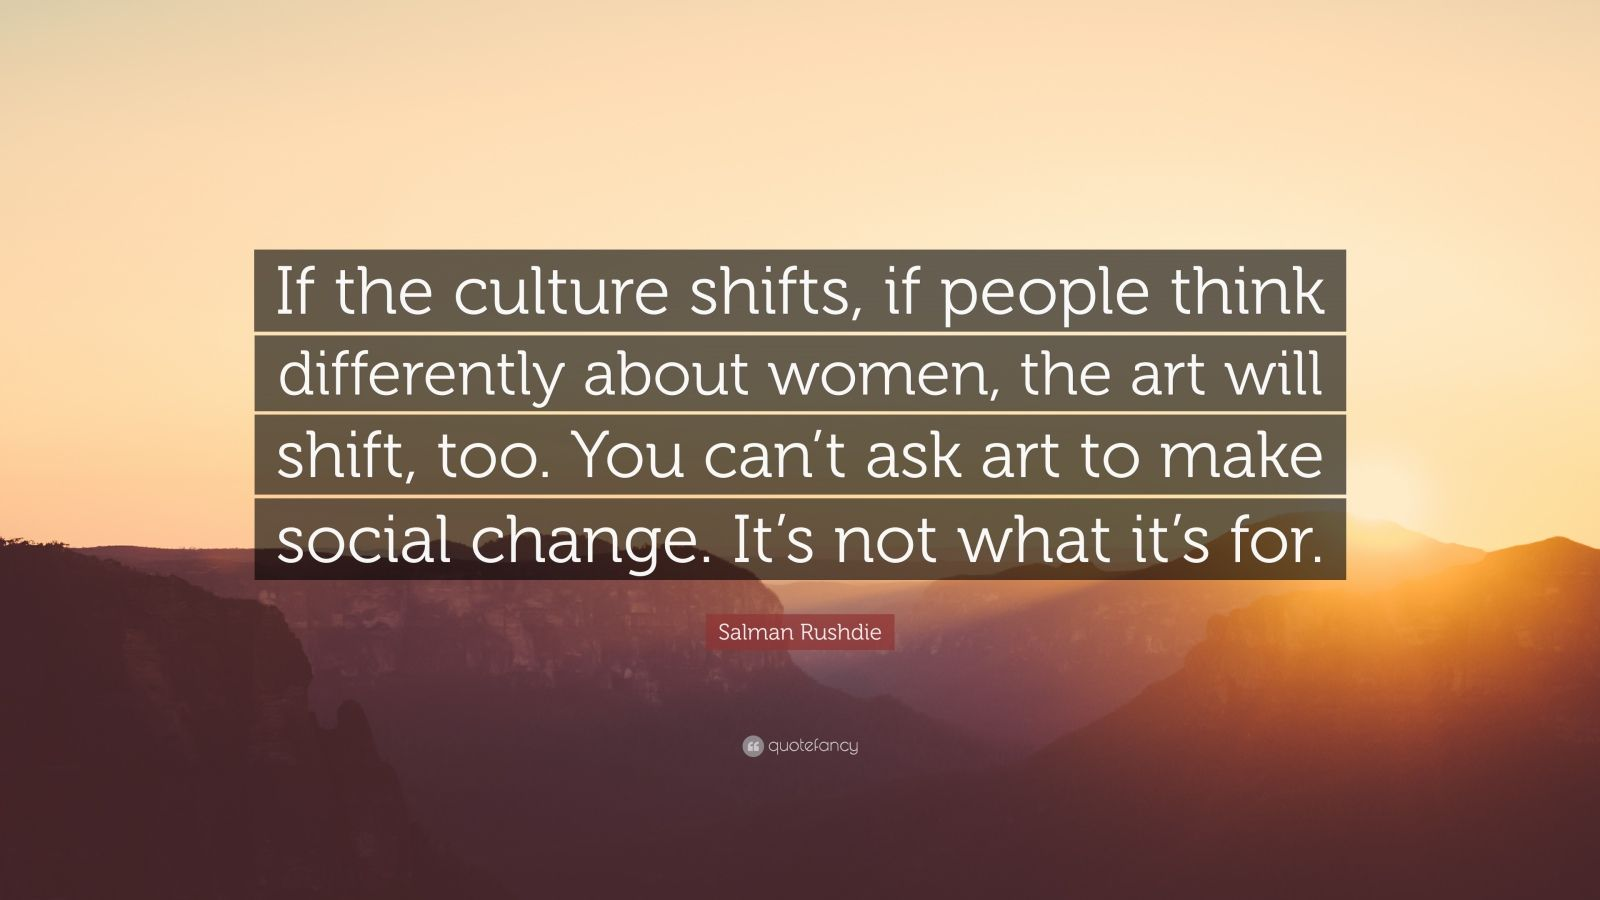 """Salman Rushdie Quote: """"If the culture shifts, if people think differently about women, the art will shift, too. You can't ask art to make social change. It's not what it's for."""""""